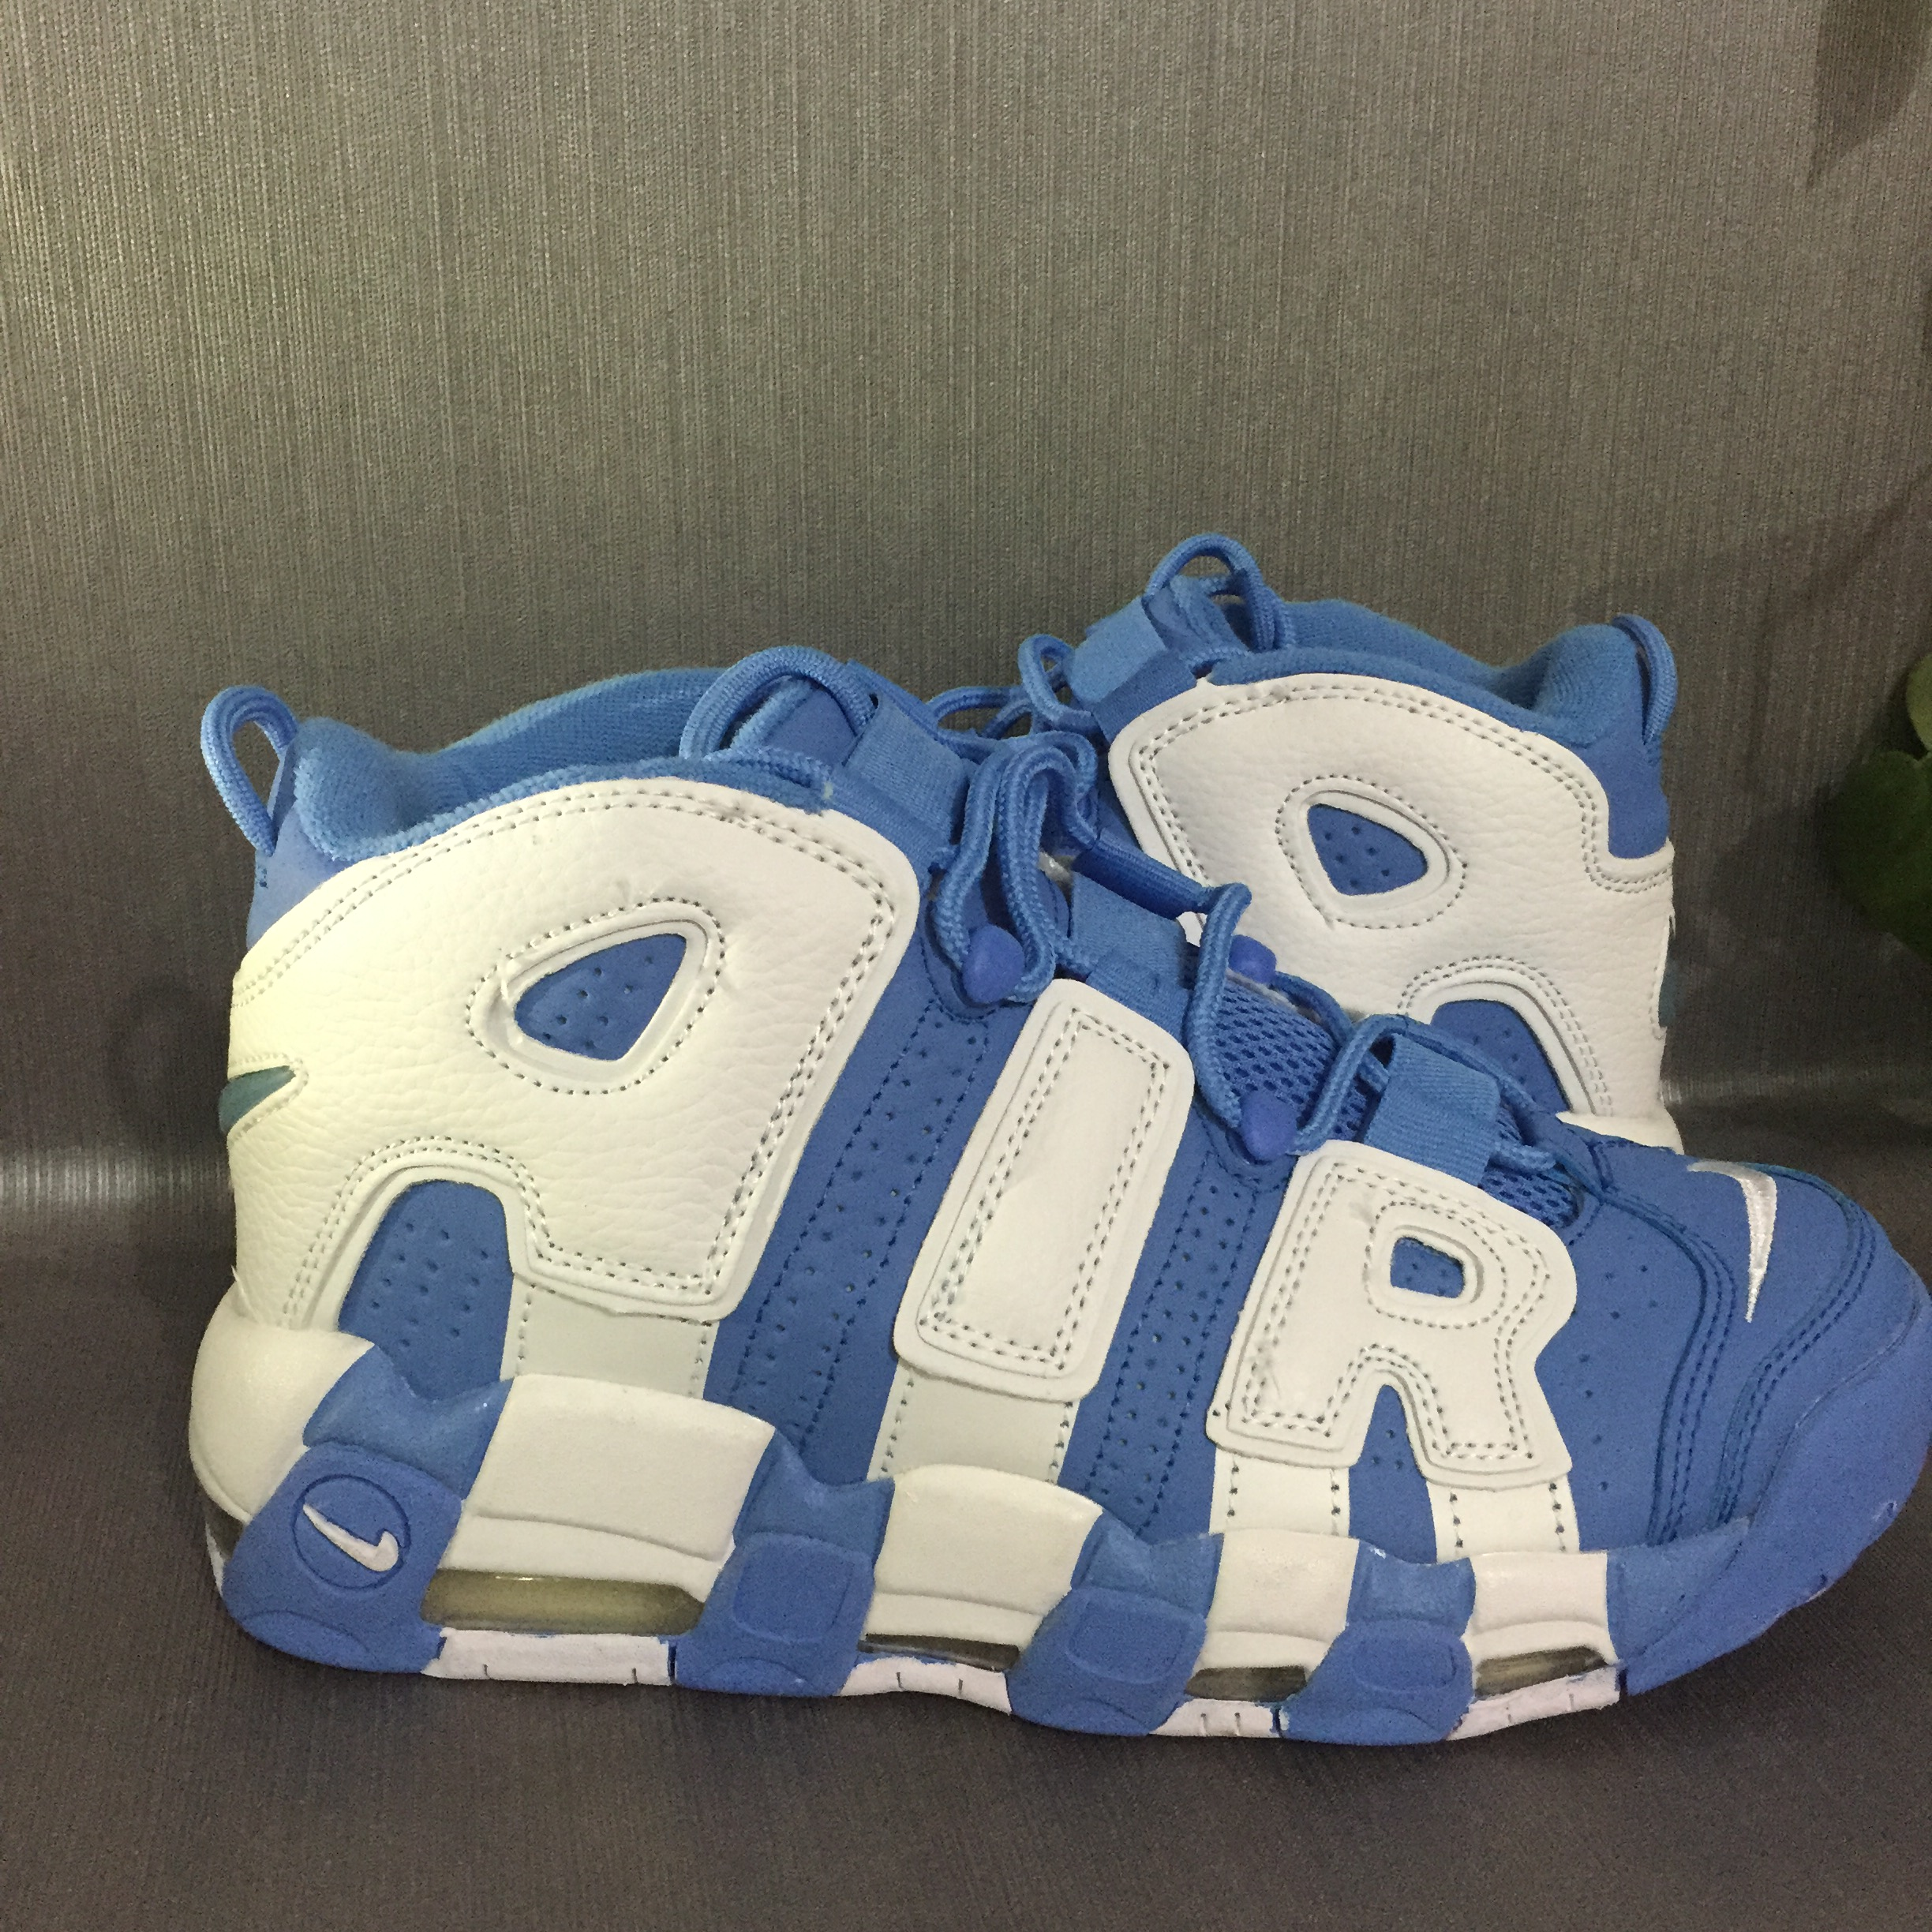 Nike Air More Uptempo White Blue Shoes